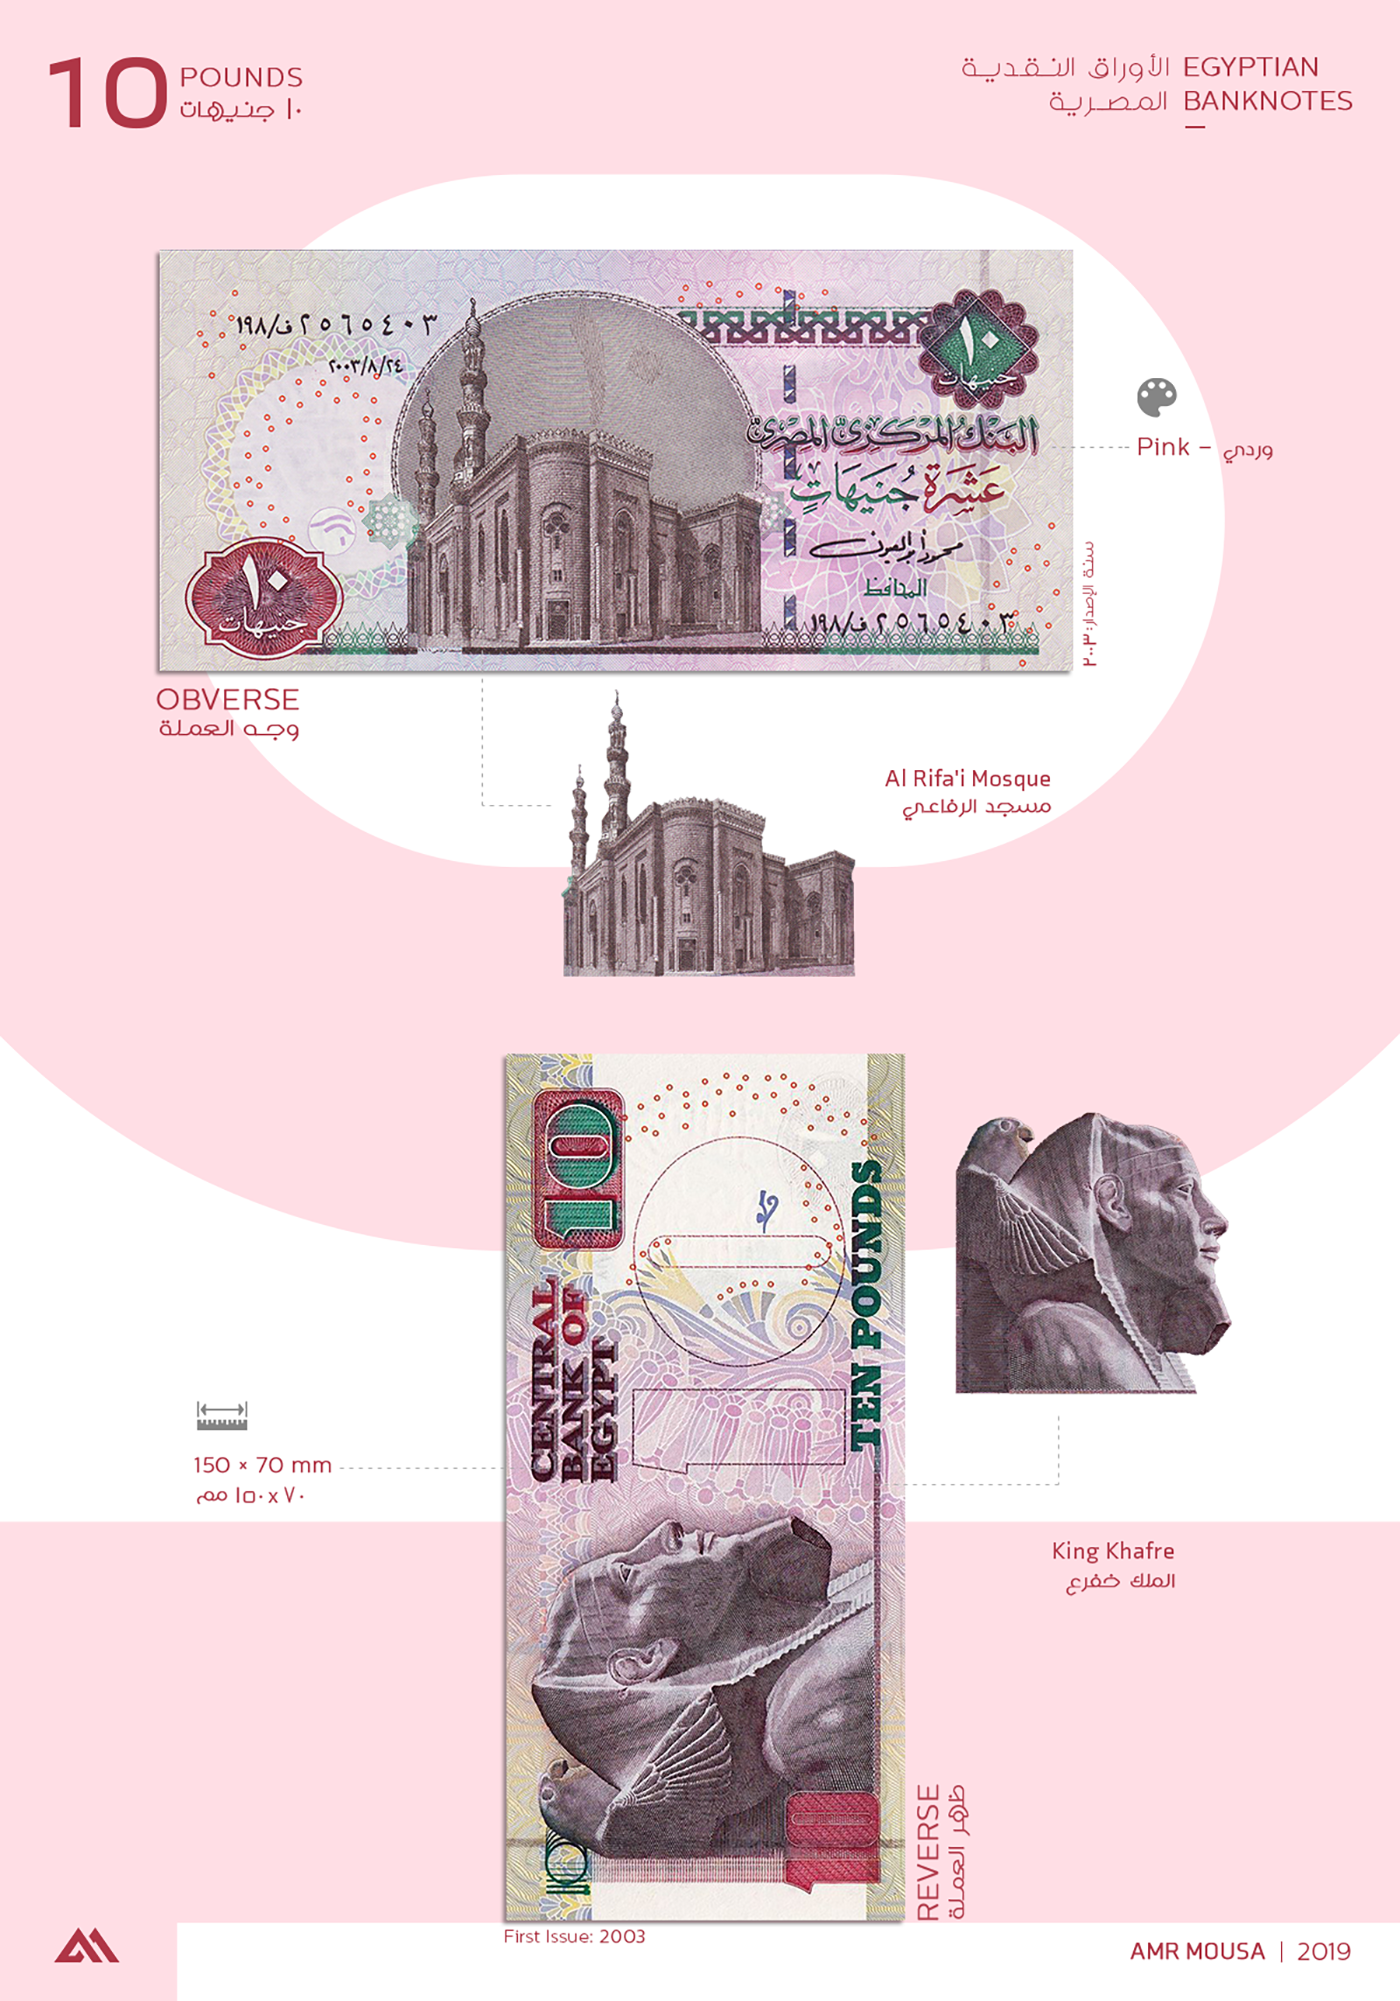 egypt banknotes currency pound architecture Interior Photography  pyramids infographics mousa